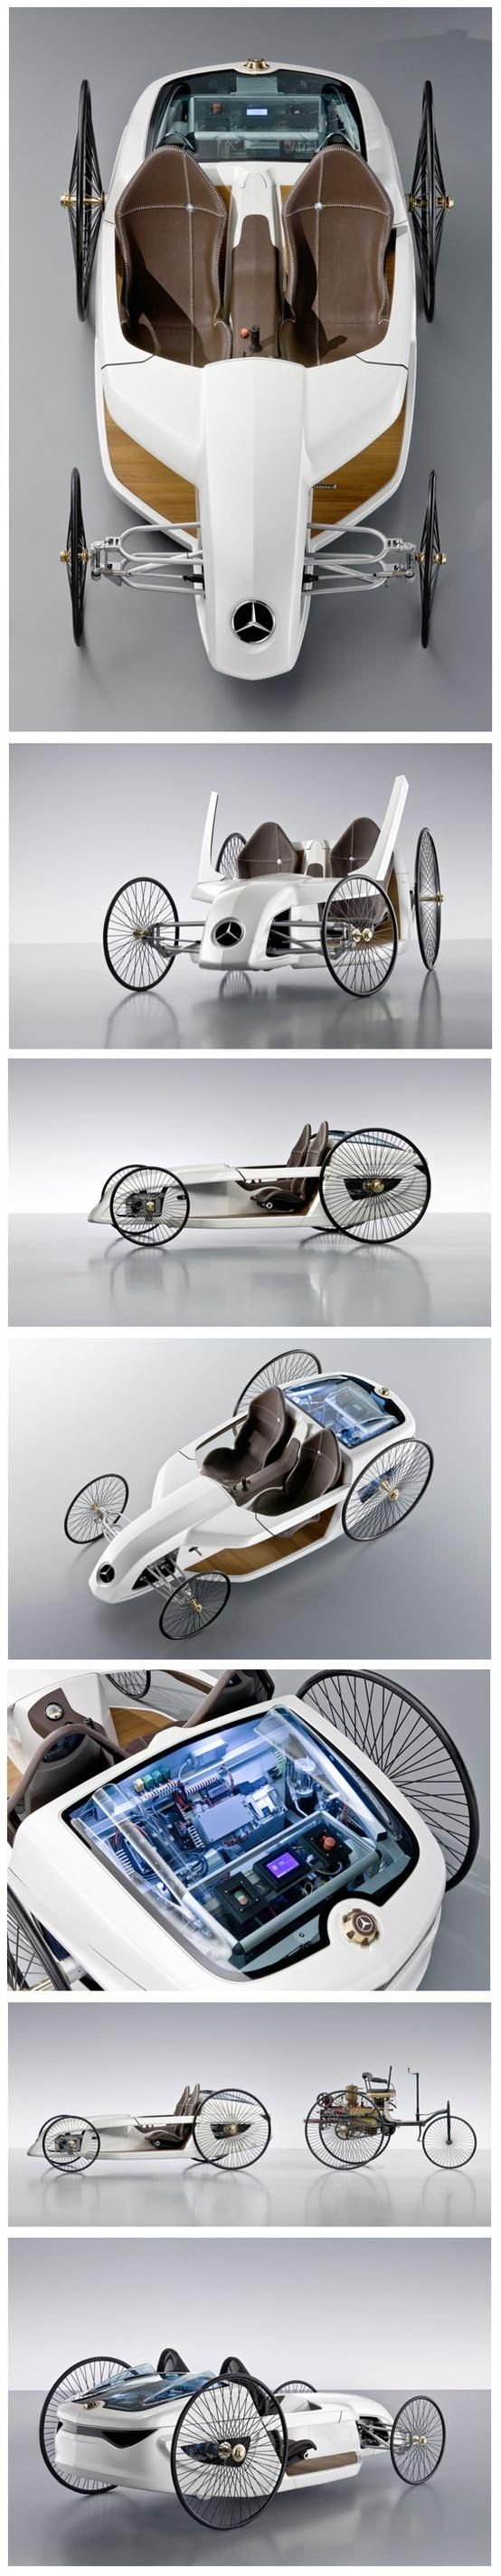 Mercedes-​Benz F-​CELL Roadster with Hybrid Drive